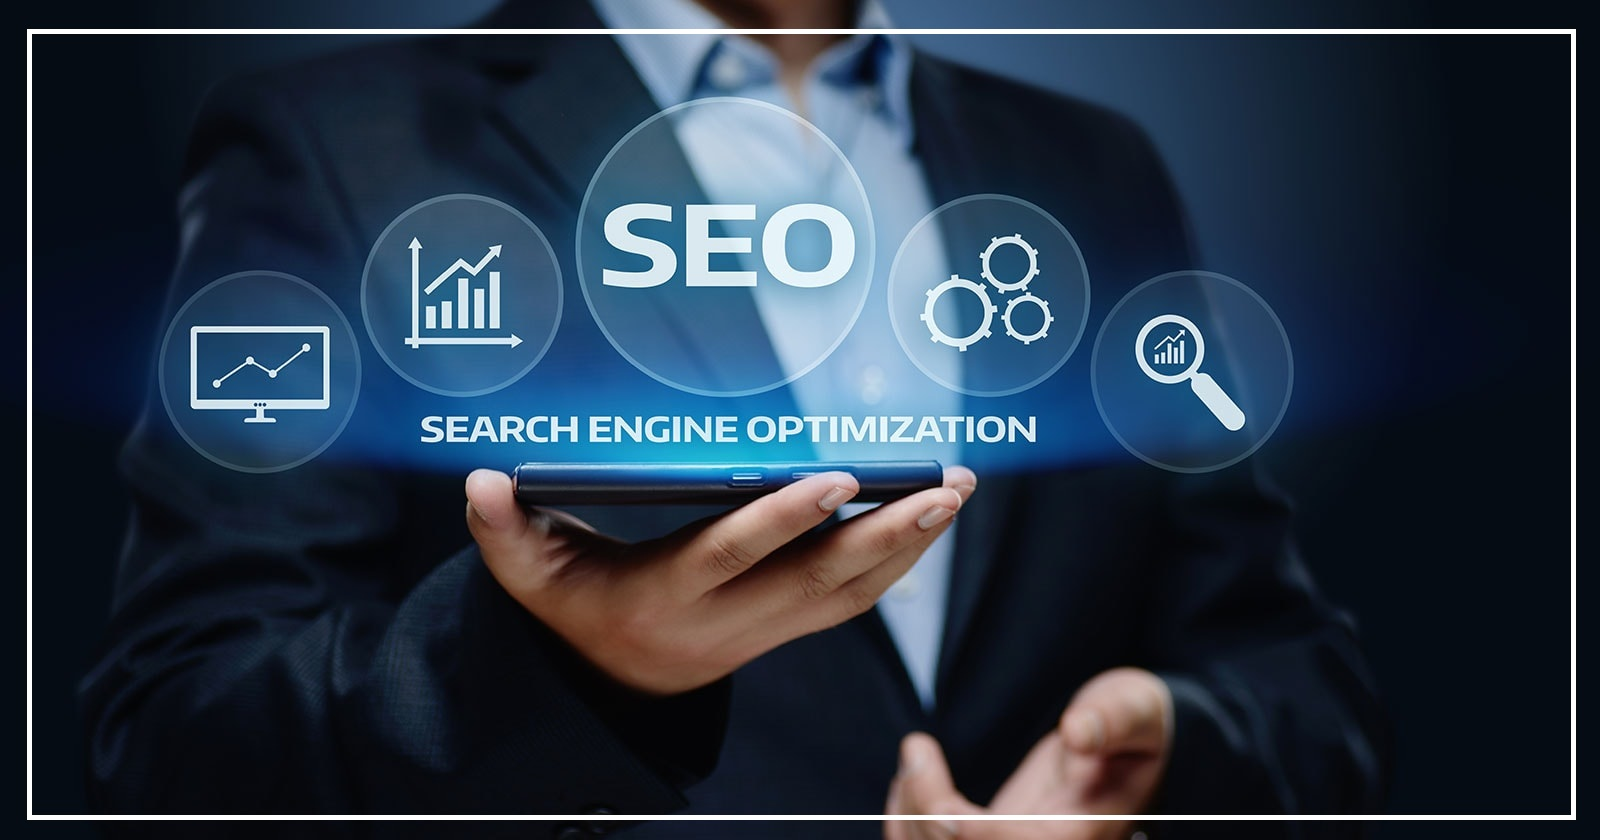 SEO Package To Increase Your Ranking - Tiers-3 Link Building Campaign